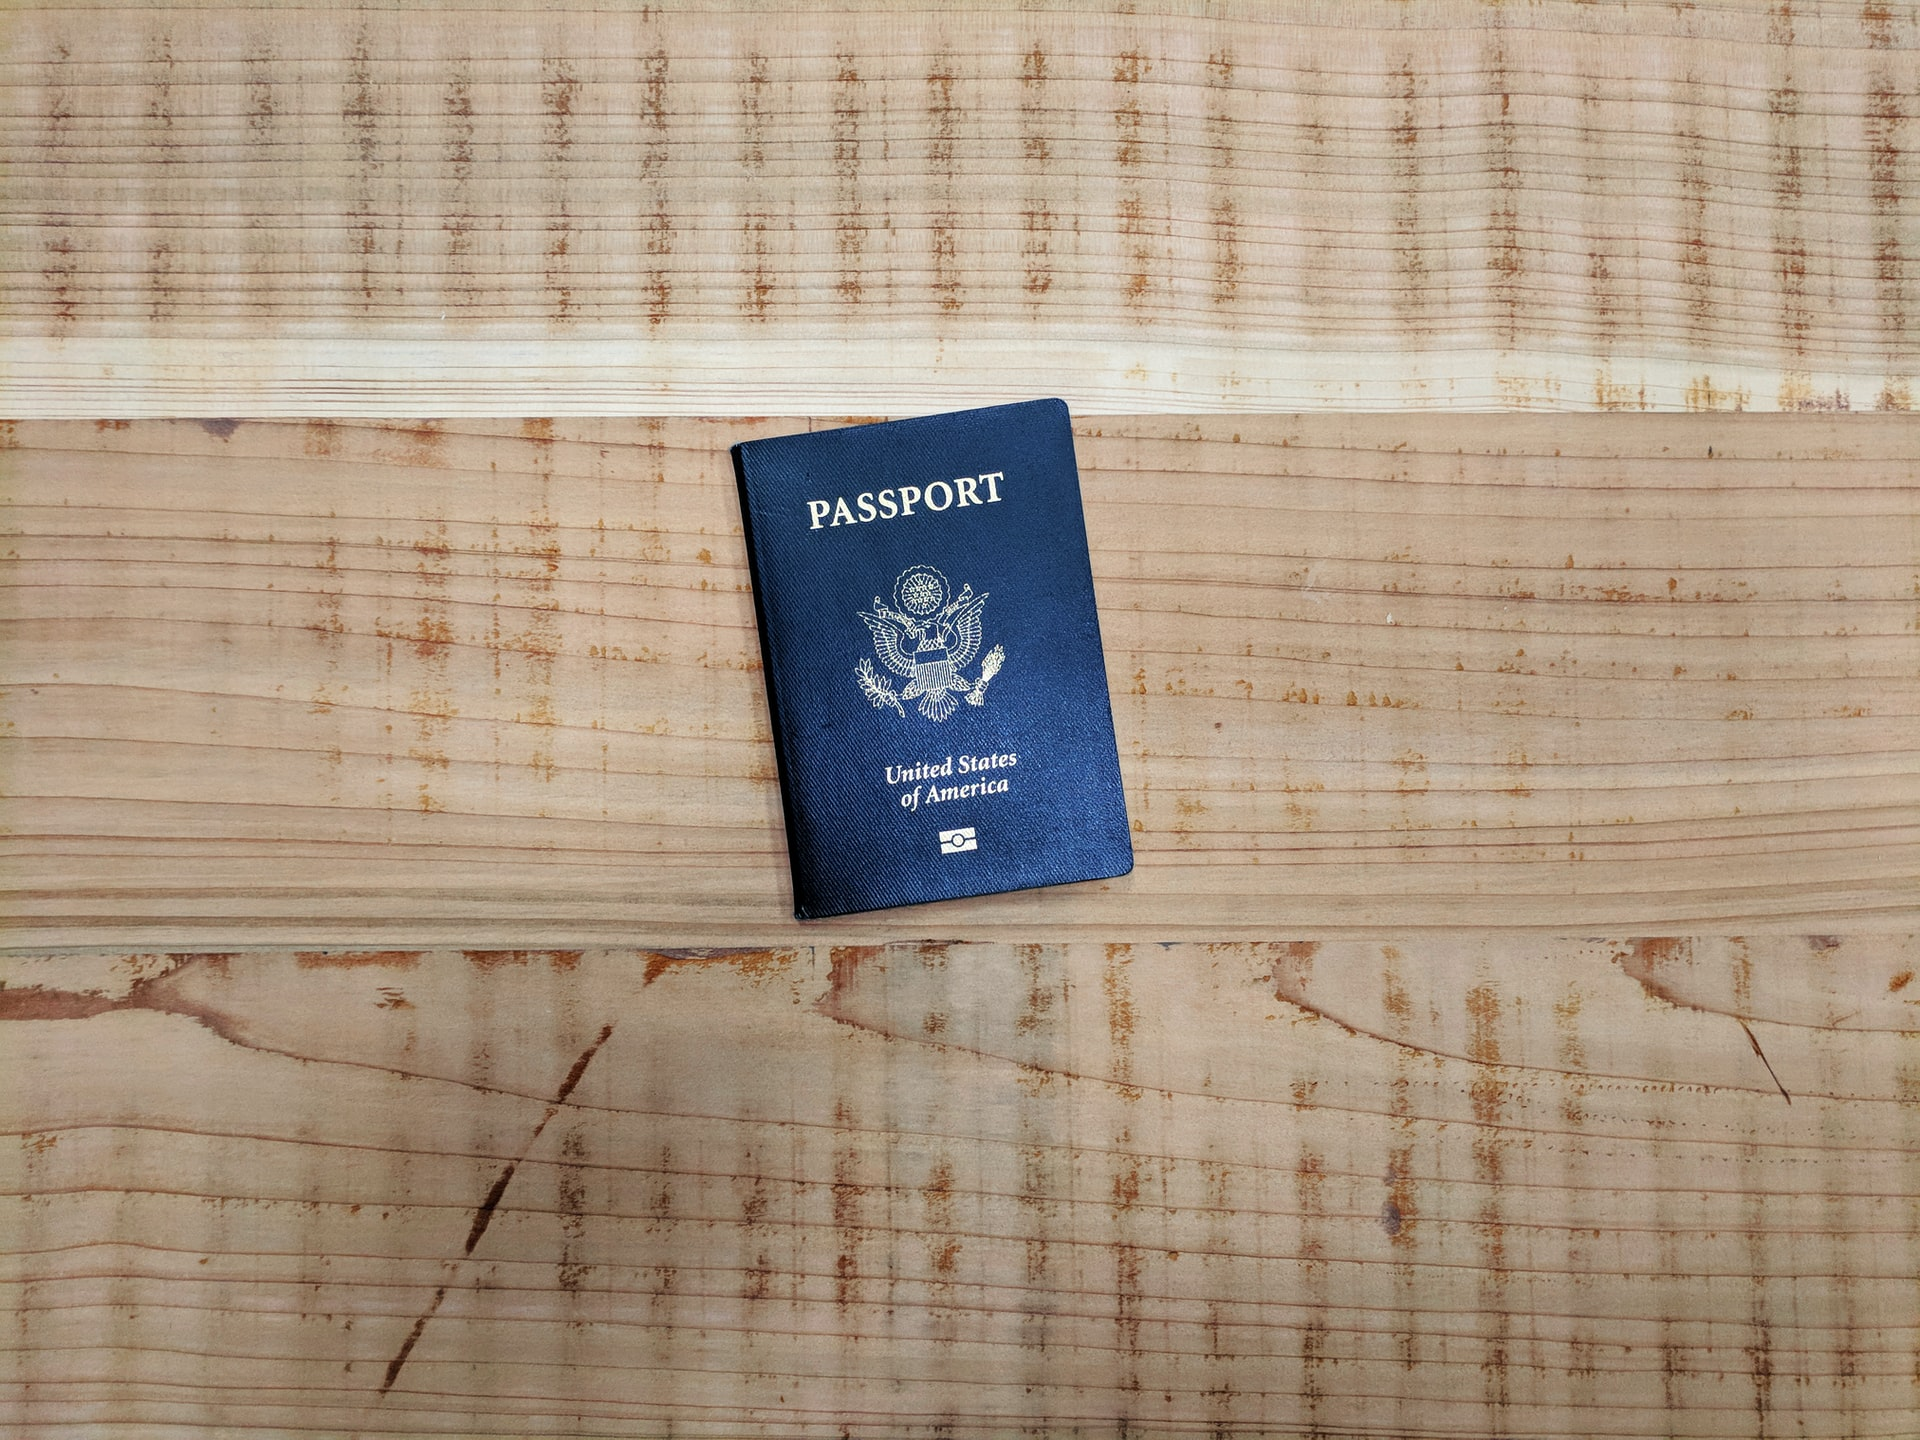 What Do Americans Need To Travel To Egypt?